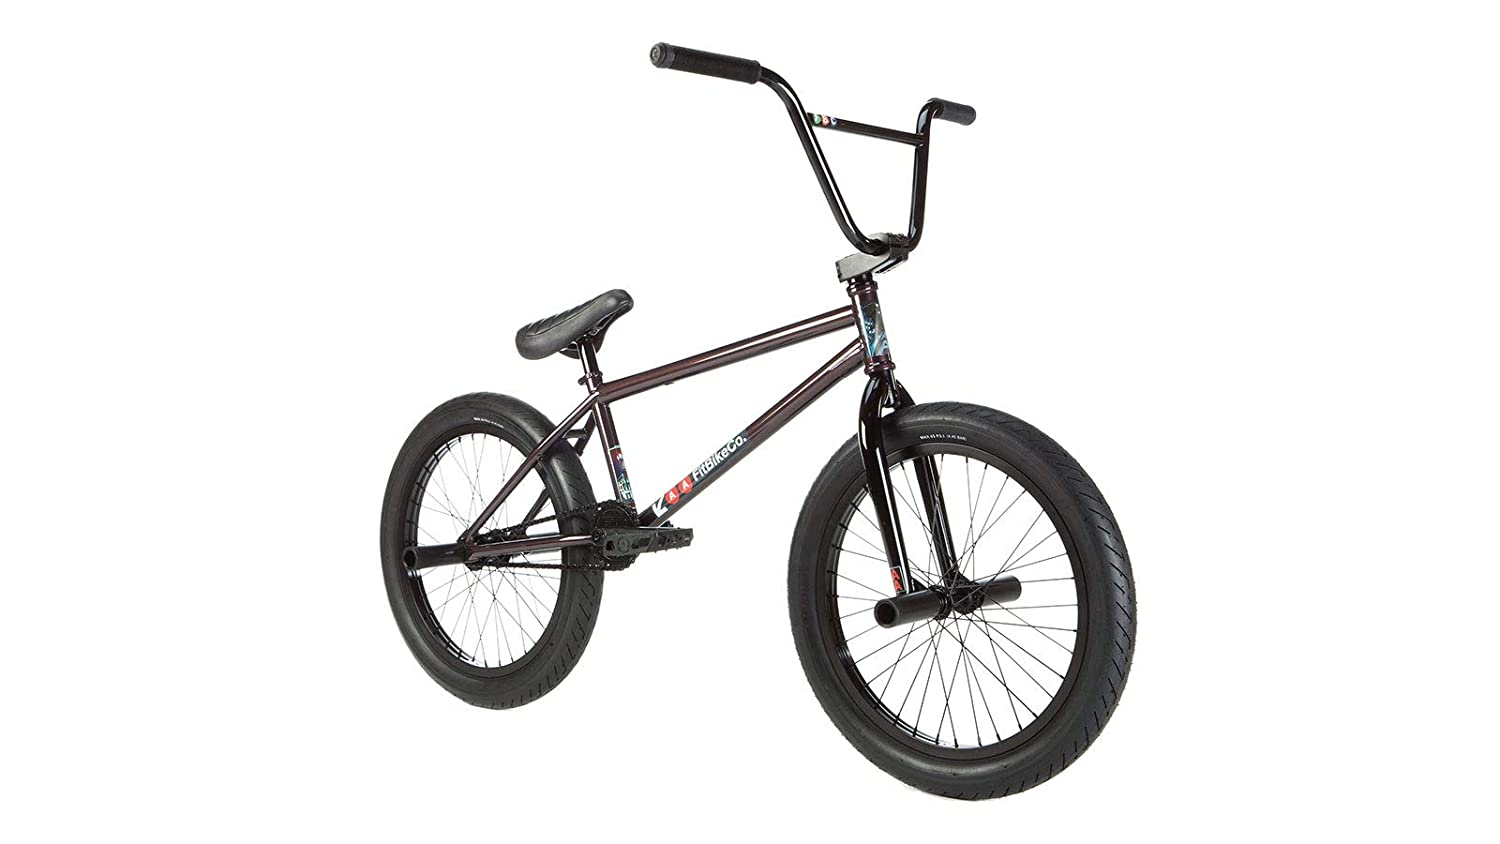 Fitbikeco 2019 Augie 20インチ Fc サンセット パープル   B07JJLY523